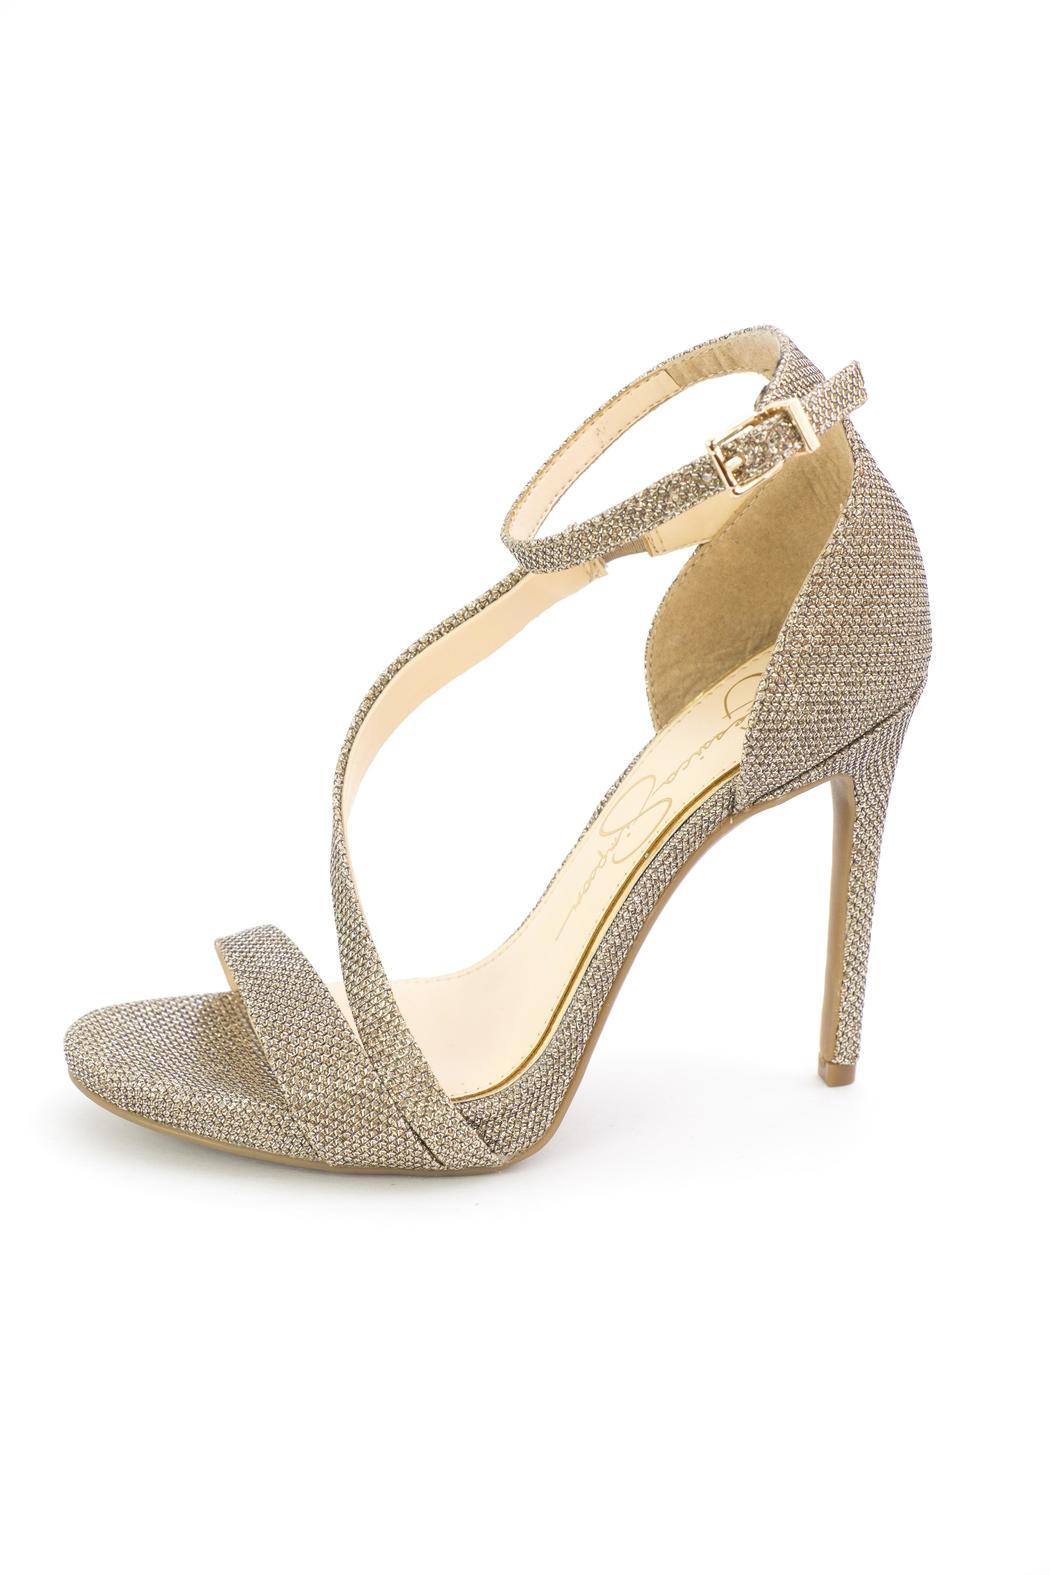 476adde58c4 Jessica Simpson Shoes Rayli Evening Heels from Canada by Starlet ...